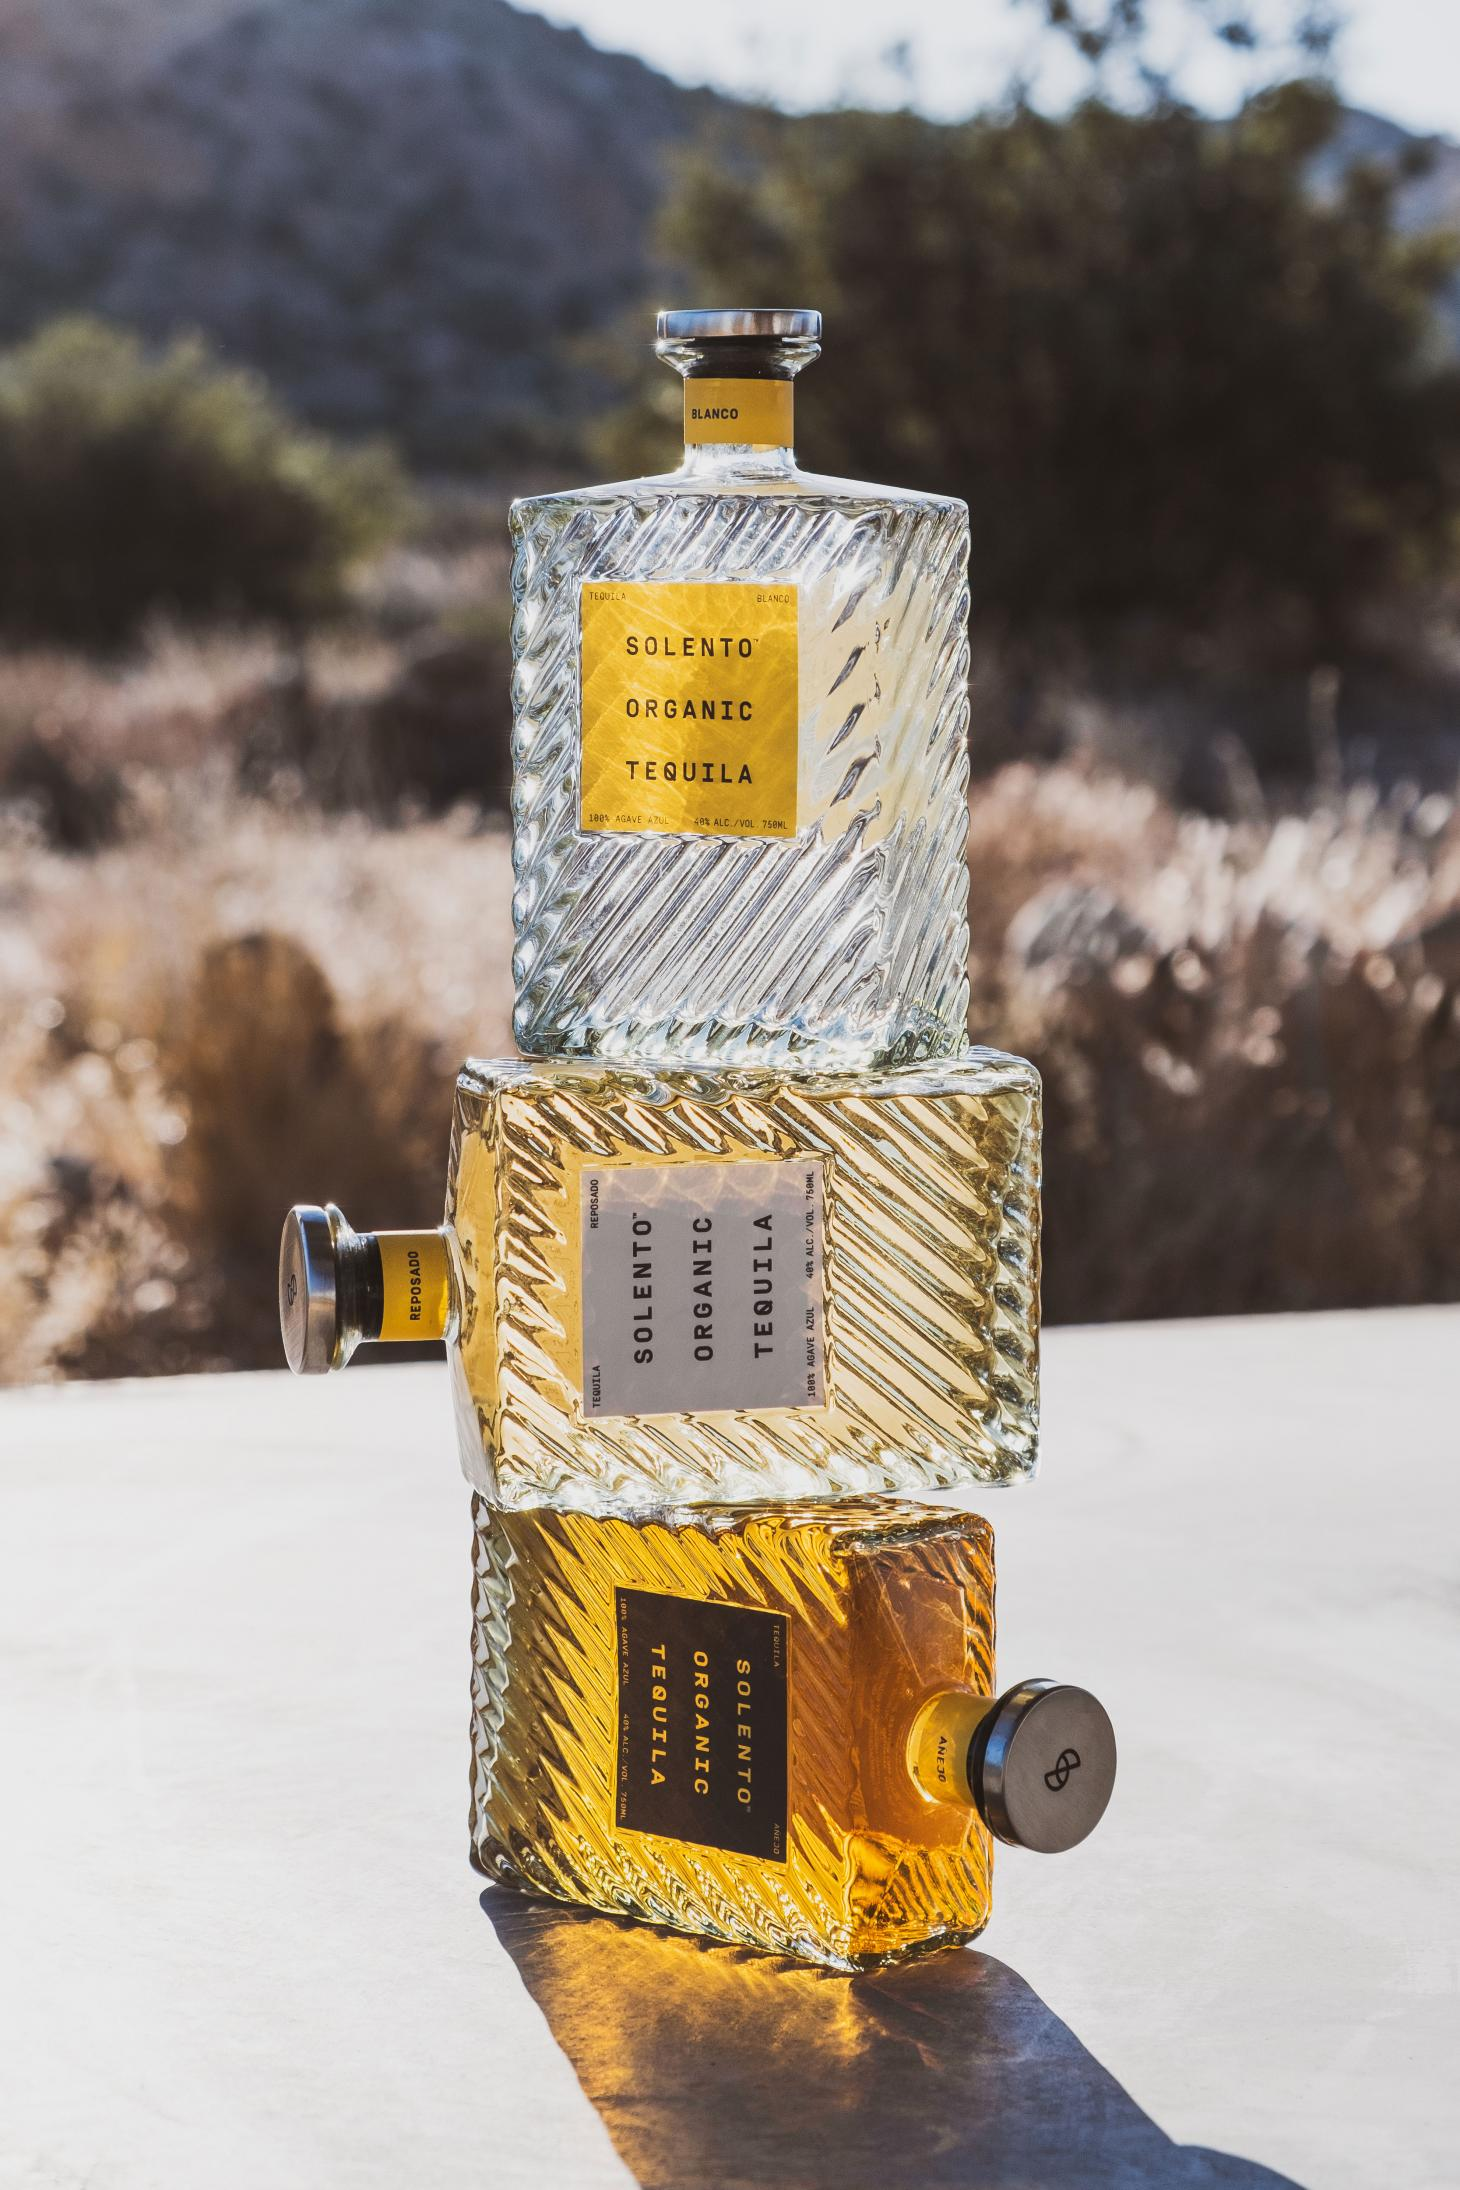 Solento tequila glass bottles stacked on top of one another